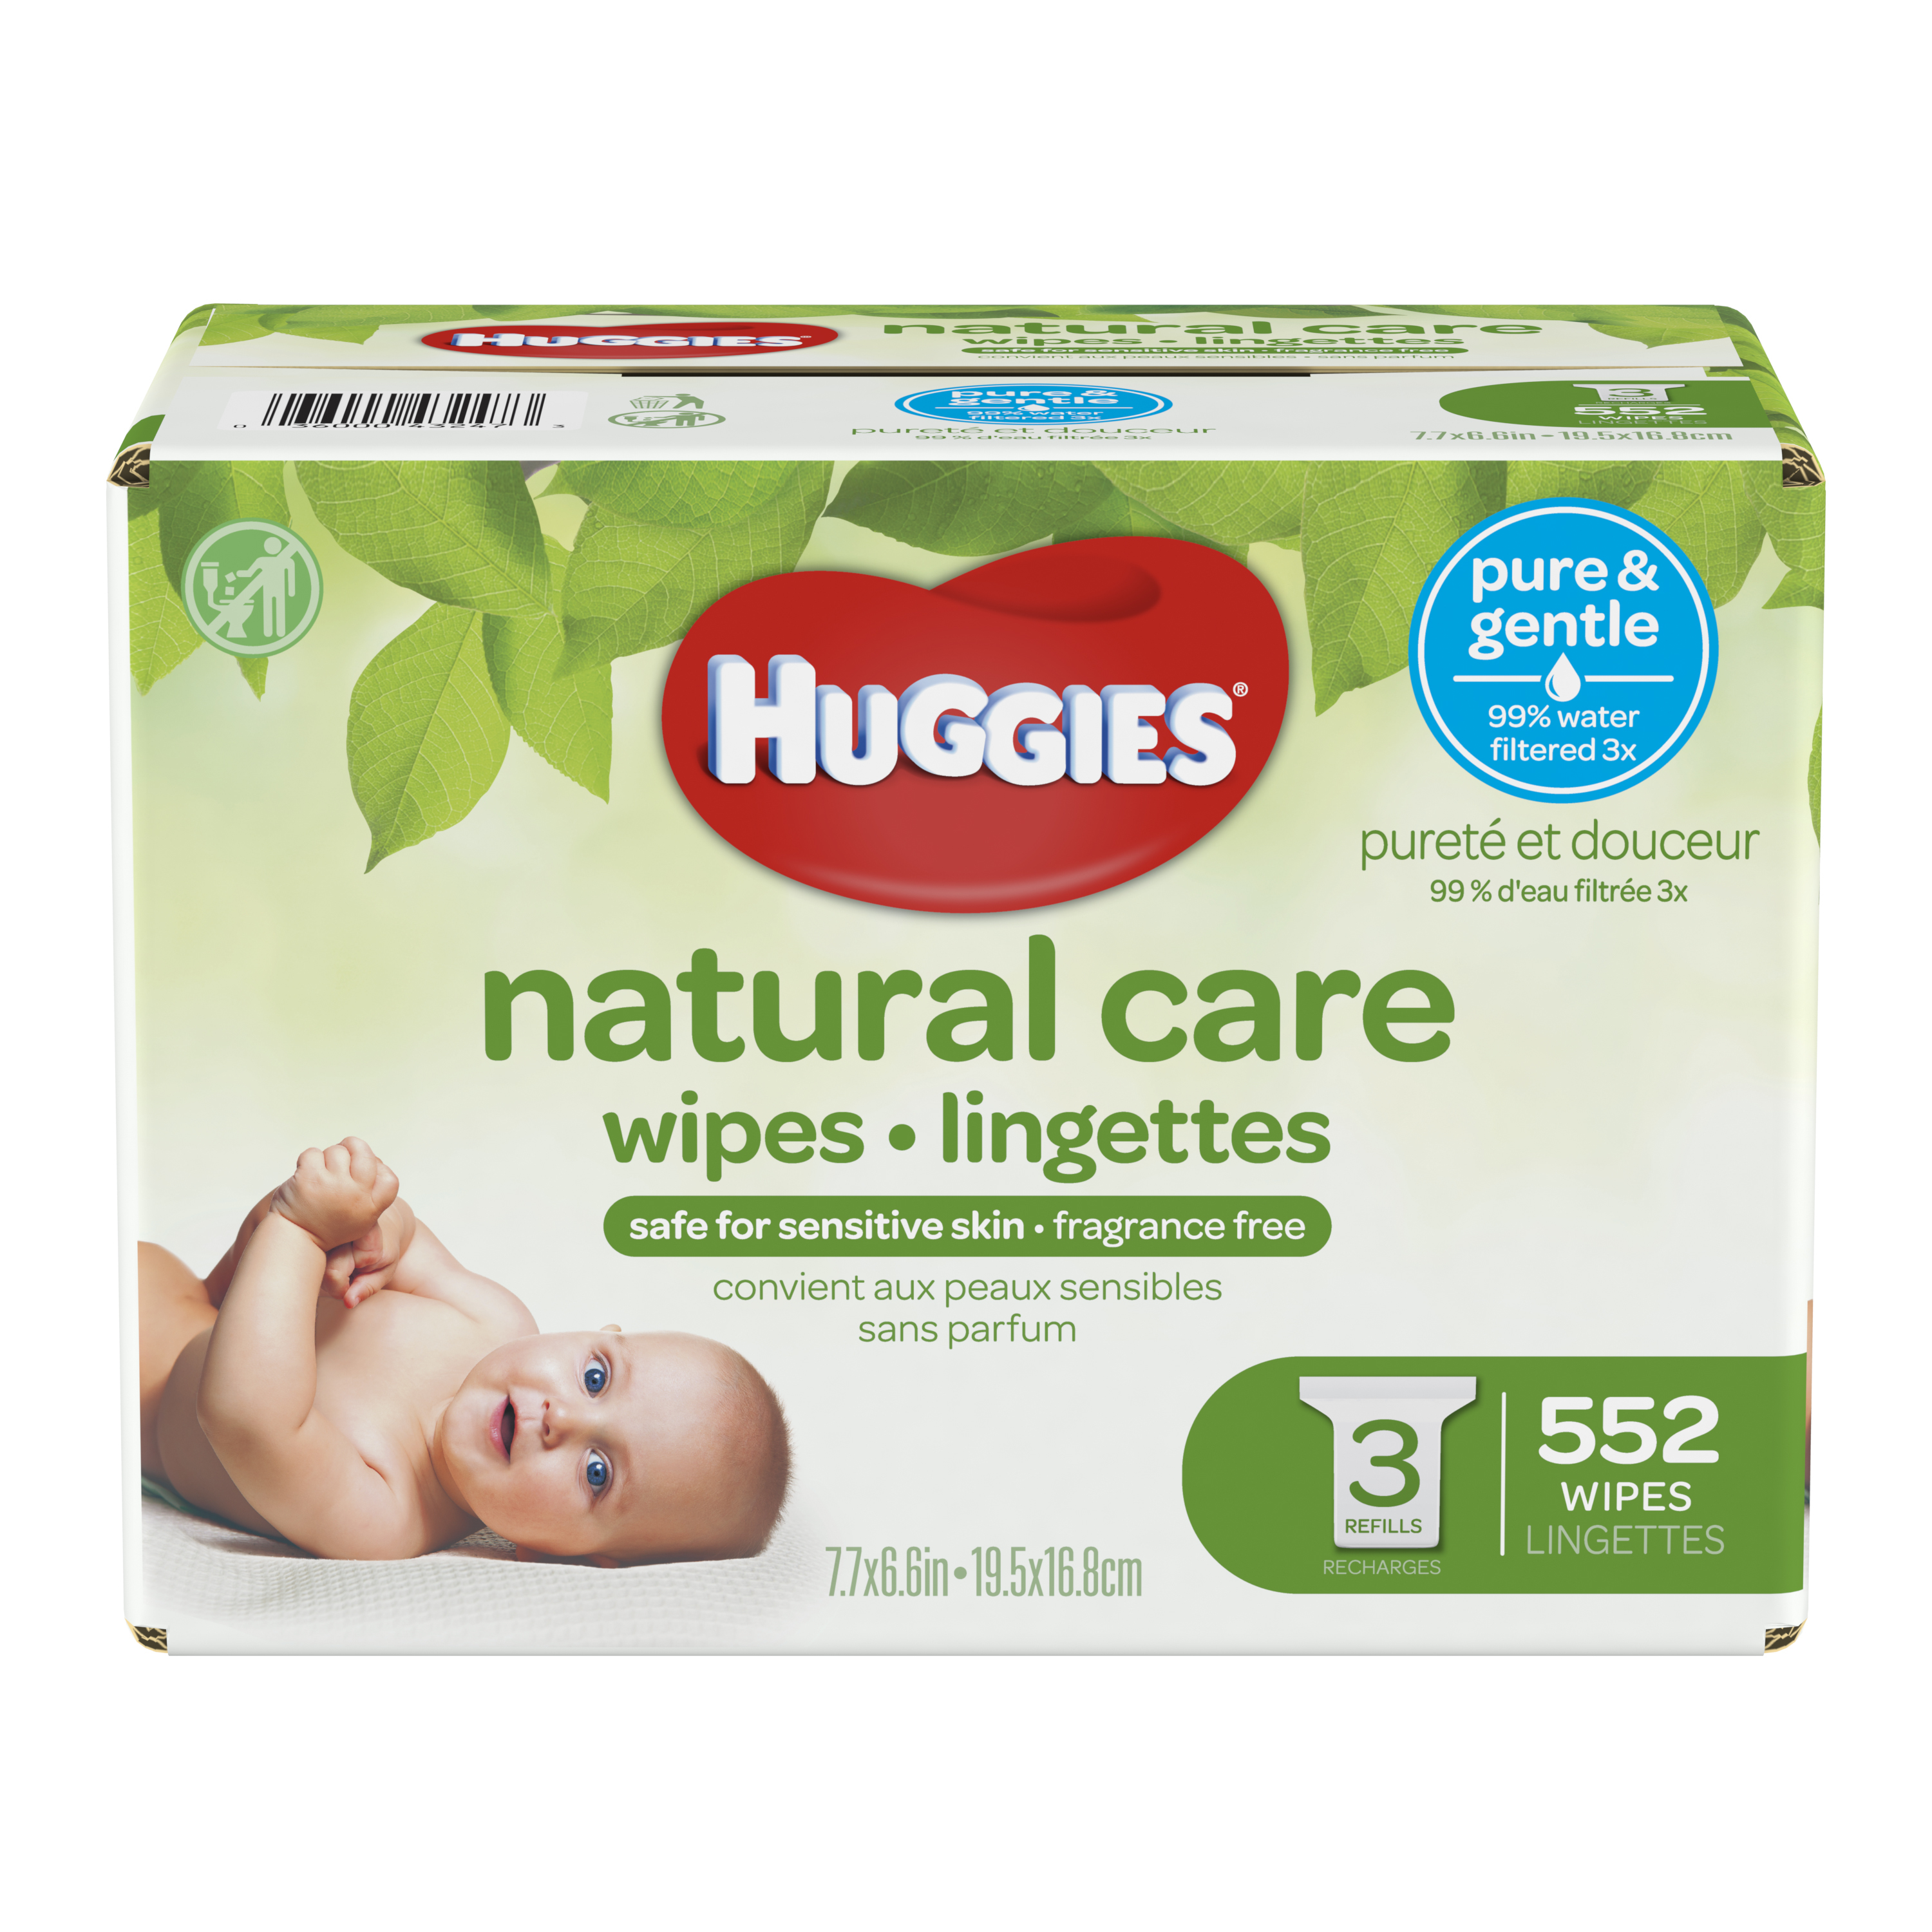 Huggies Natural Care Baby Wipes, Unscented Refills (552 count)